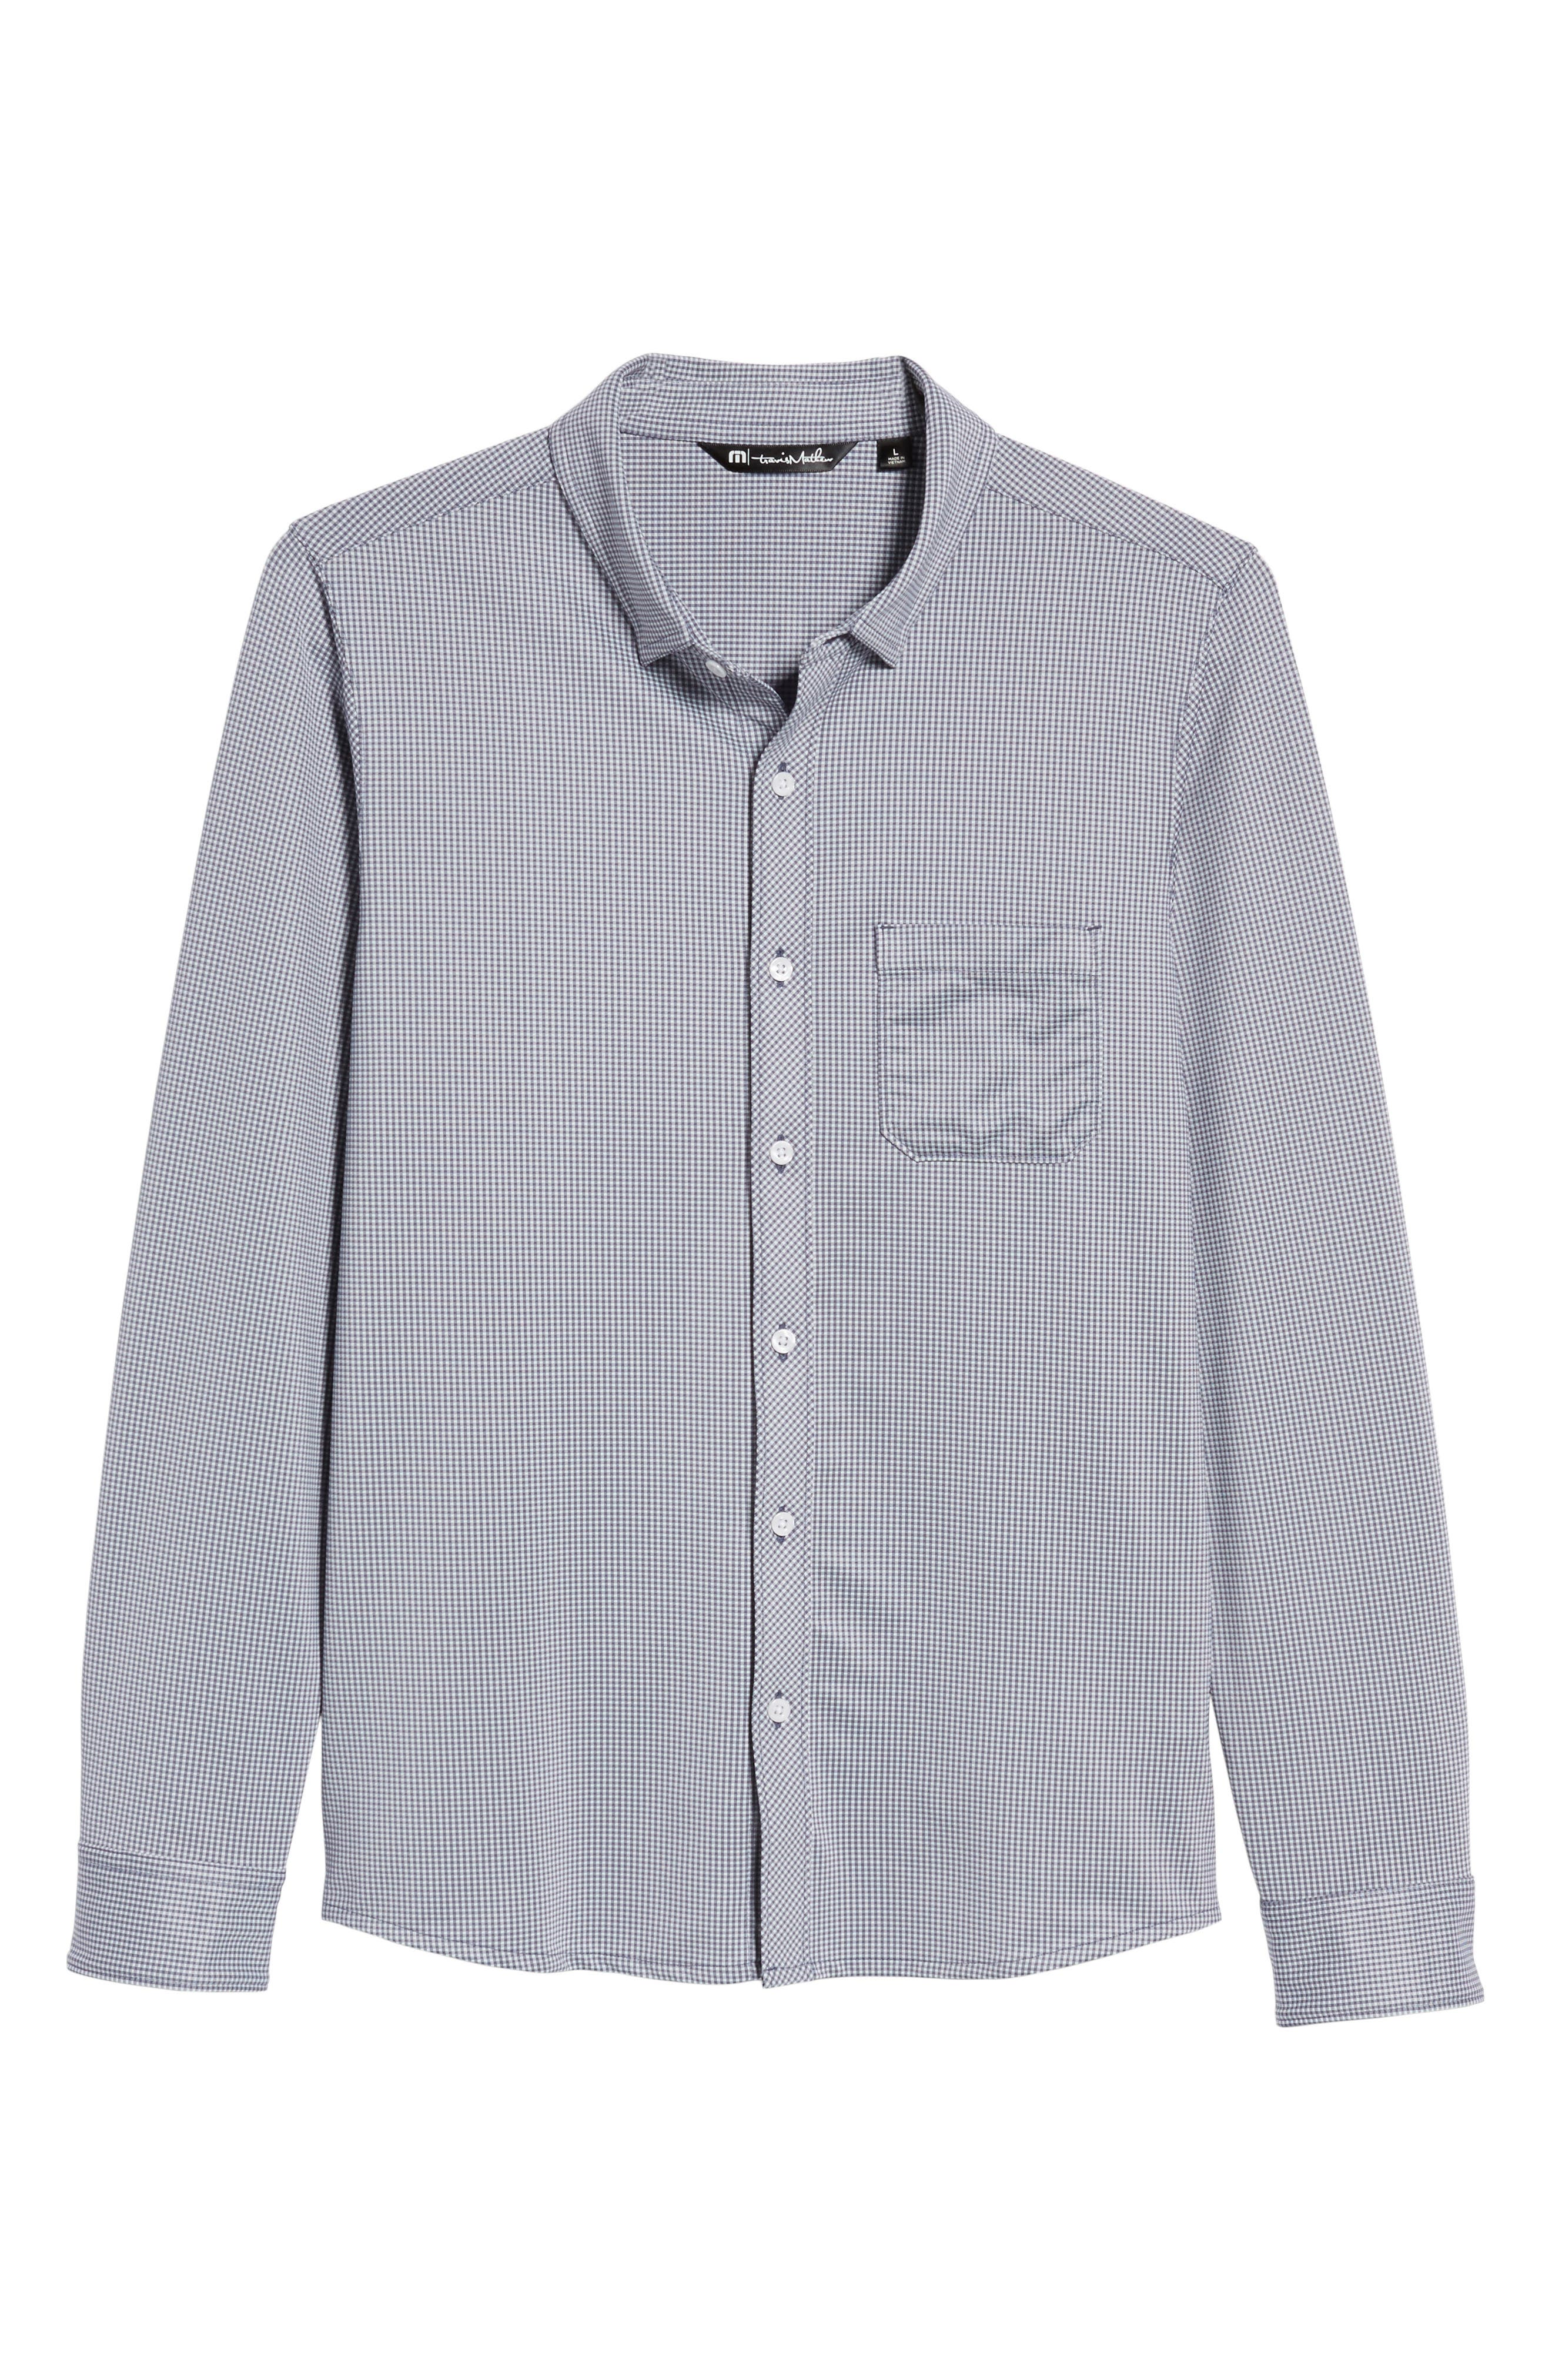 Couig Gingham Sport Shirt,                             Alternate thumbnail 6, color,                             White/ Grisaille